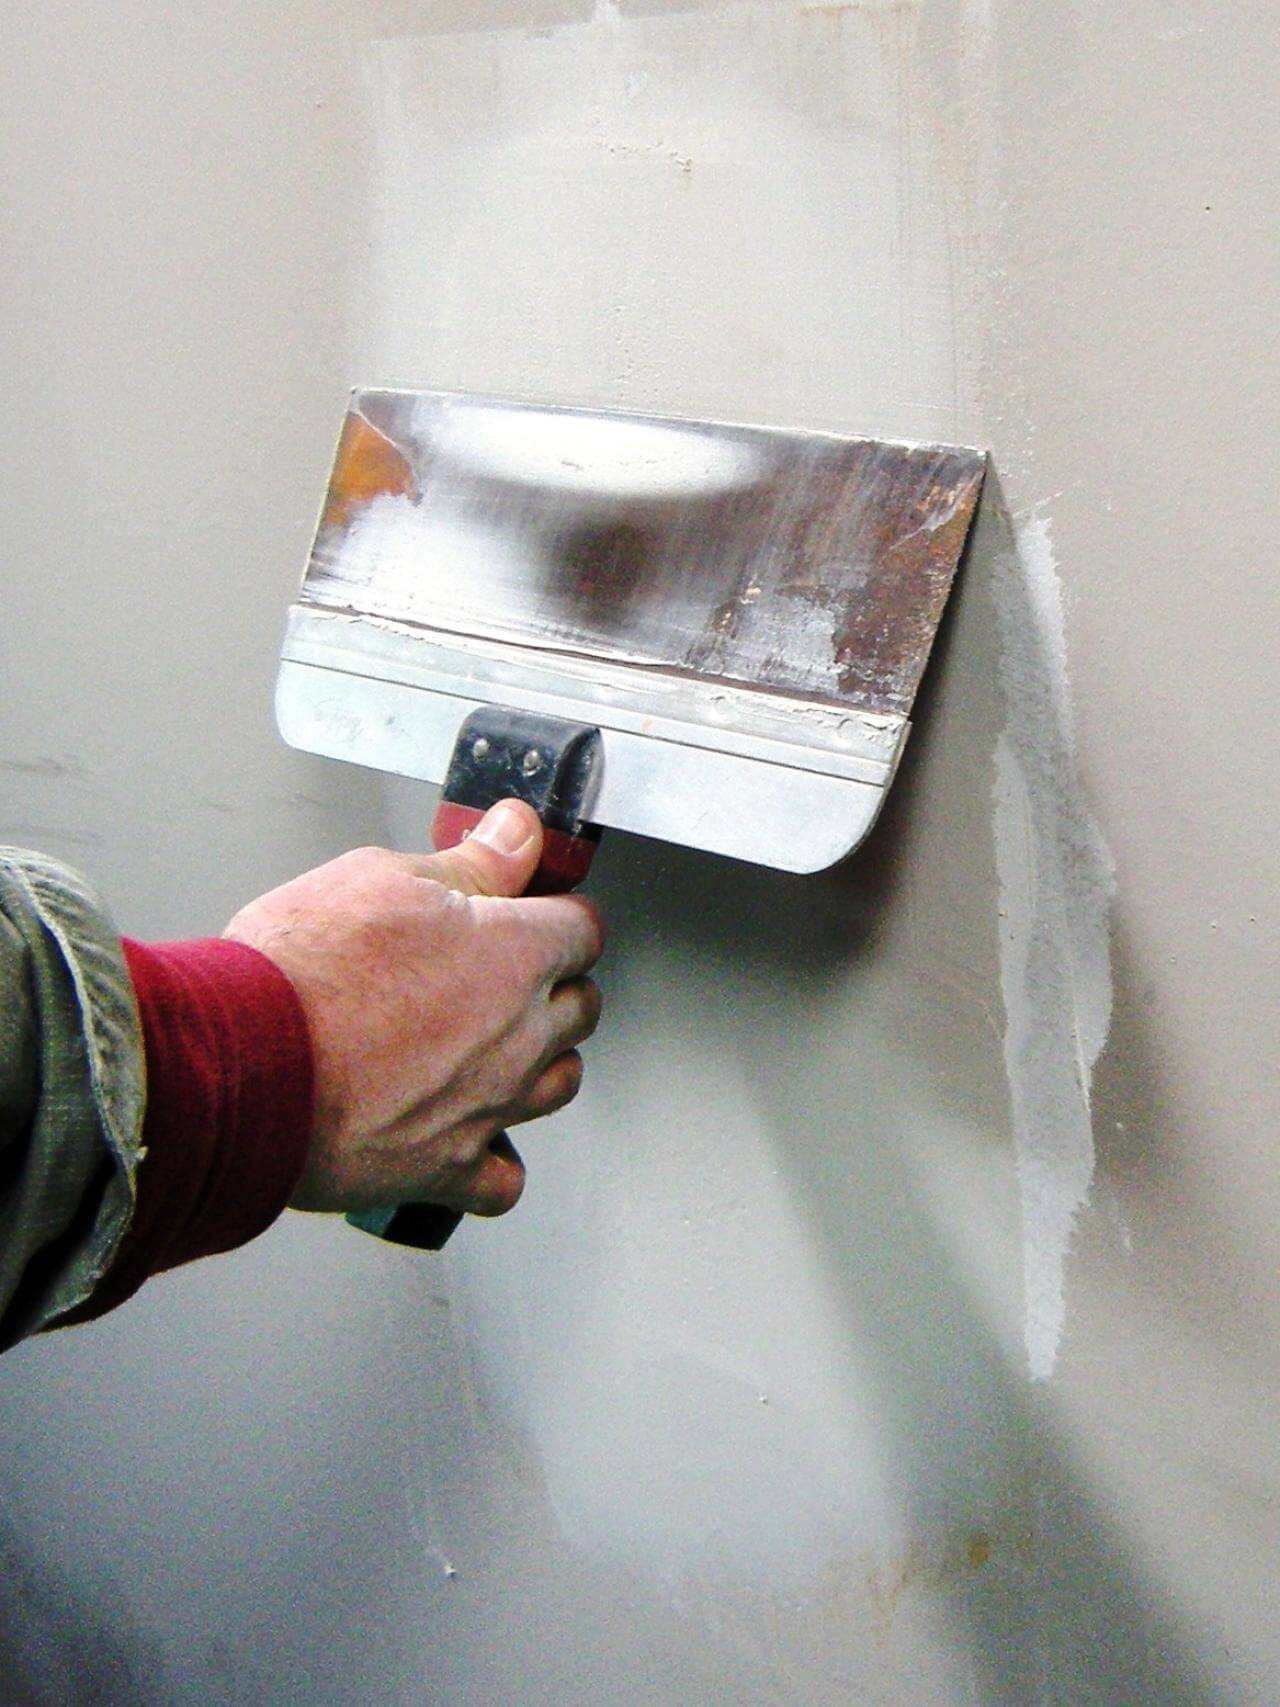 Drywall repair can save you a few bucks if you know how it DIY